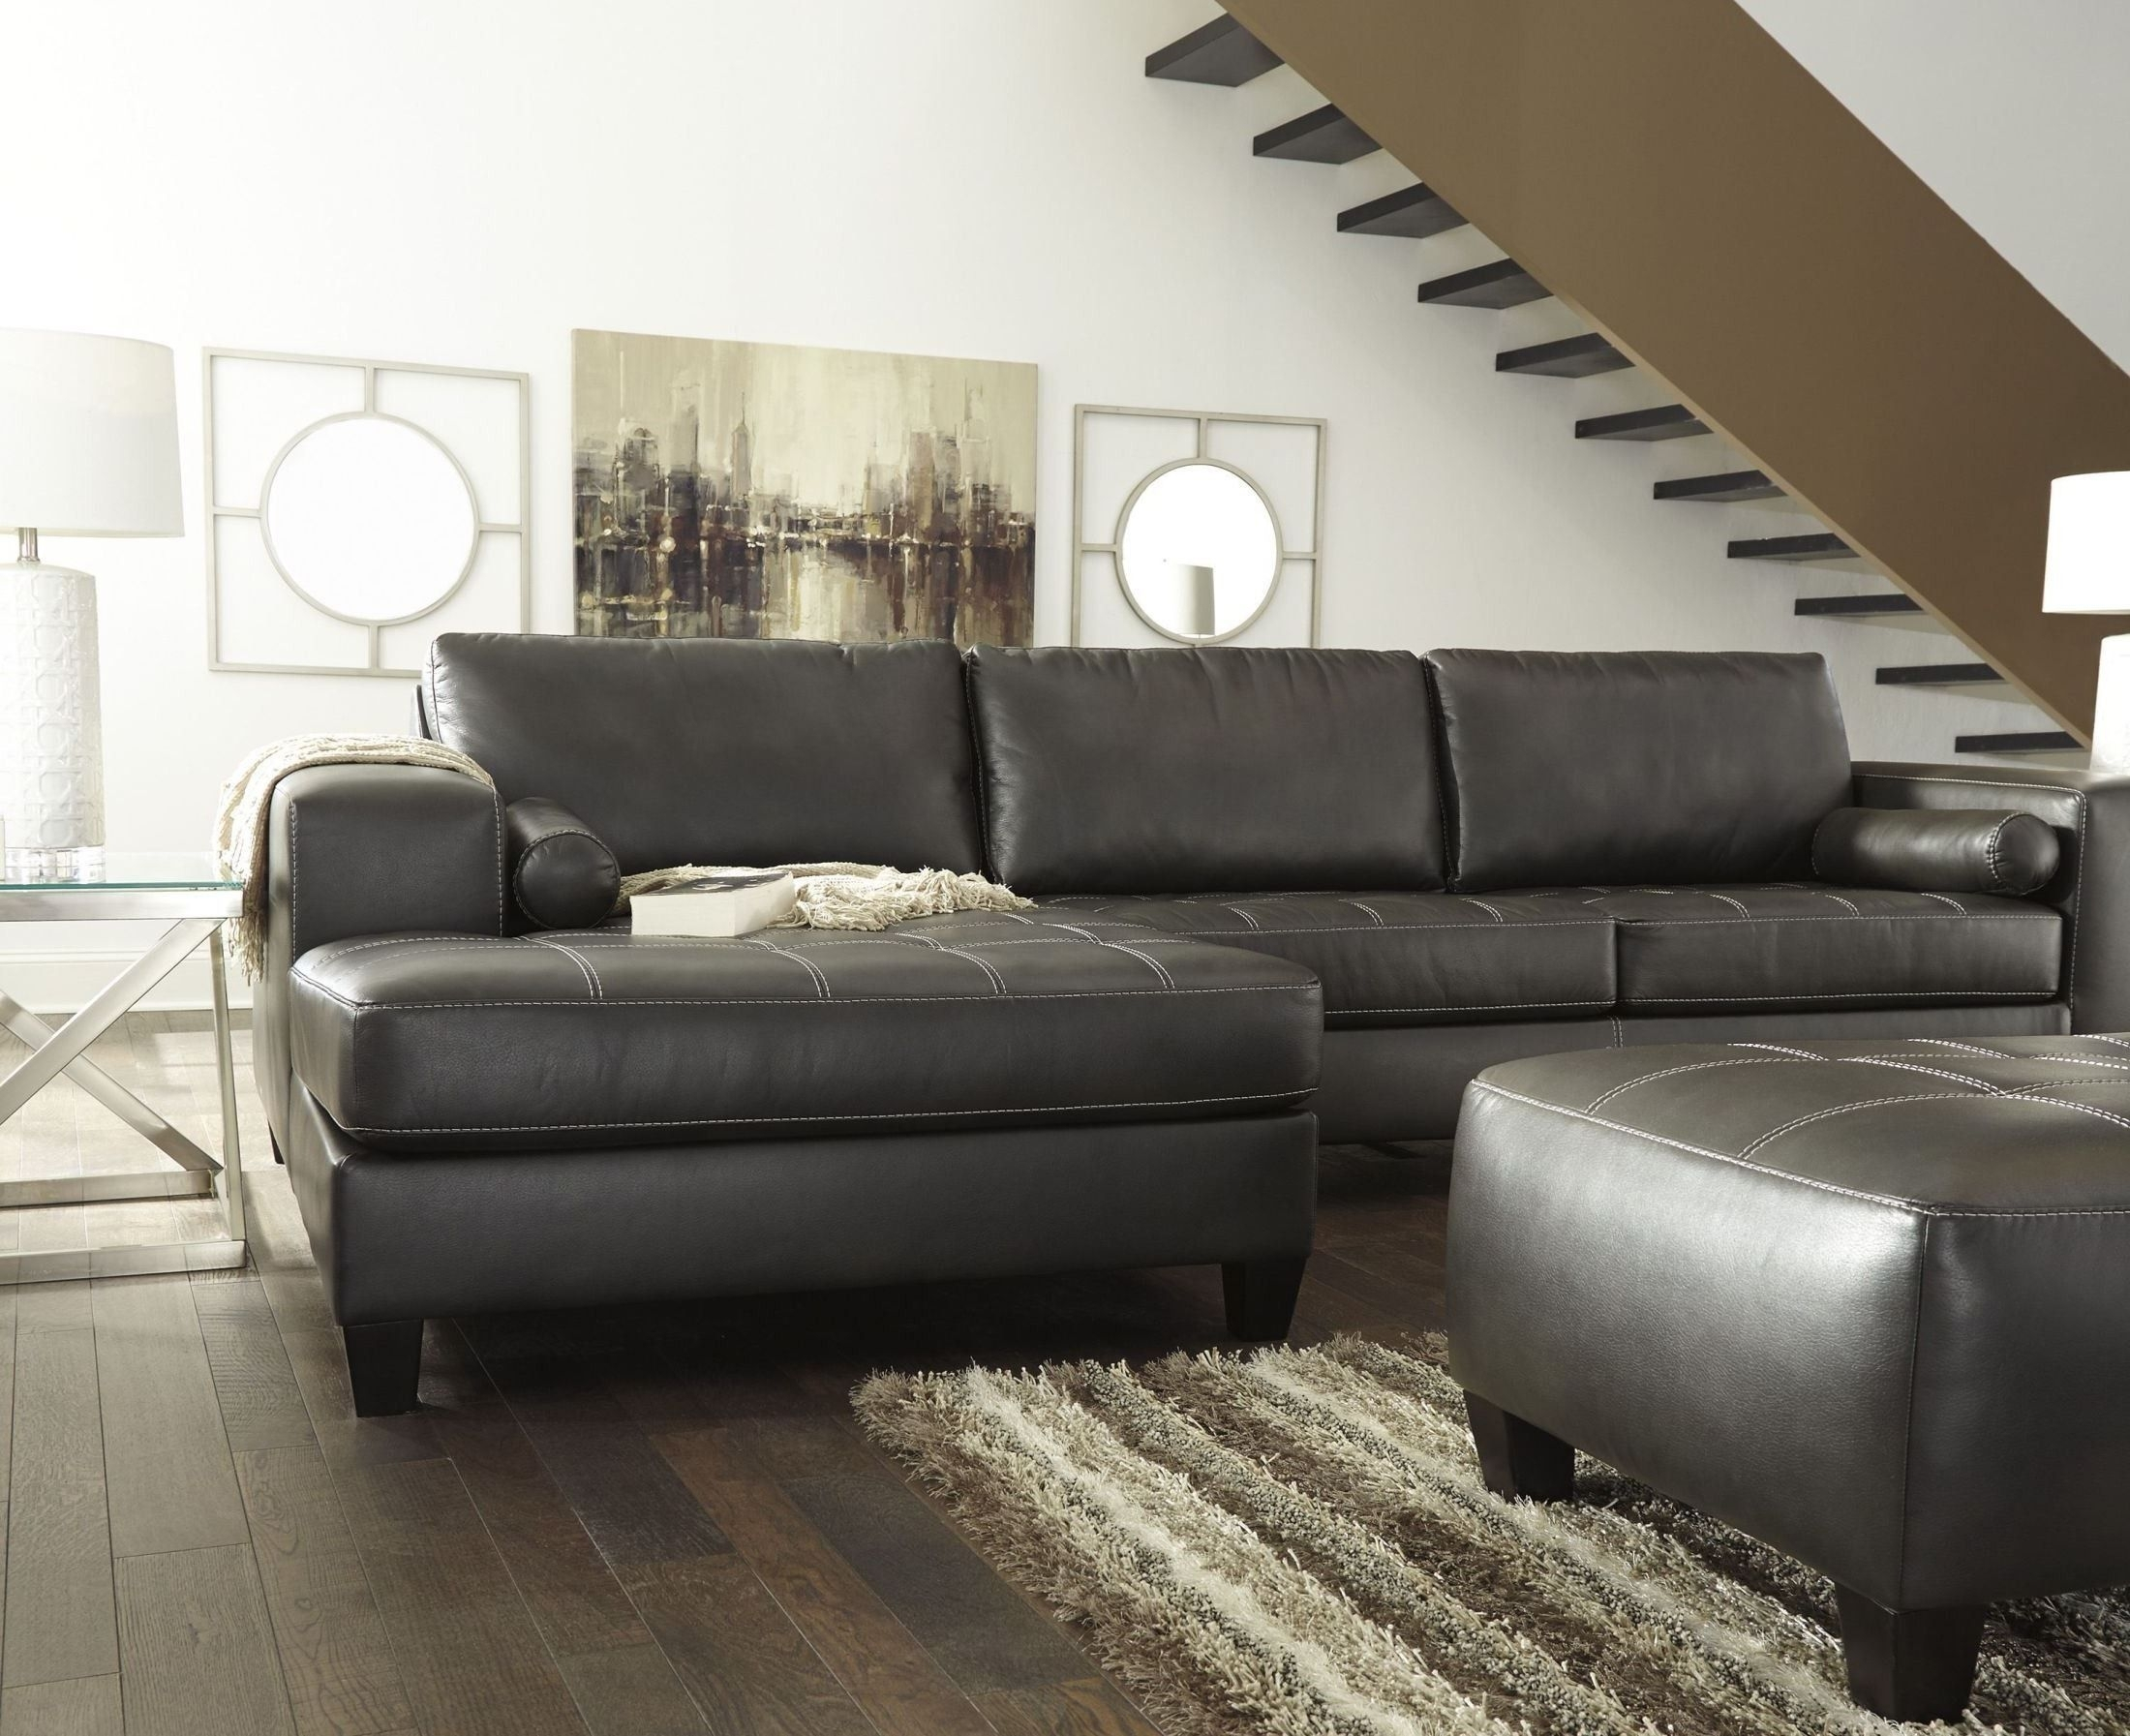 American Eagle Furniture Ek-Lb309-Dc Dark Chocolate Sofa C inside Tenny Dark Grey 2 Piece Left Facing Chaise Sectionals With 2 Headrest (Image 6 of 30)